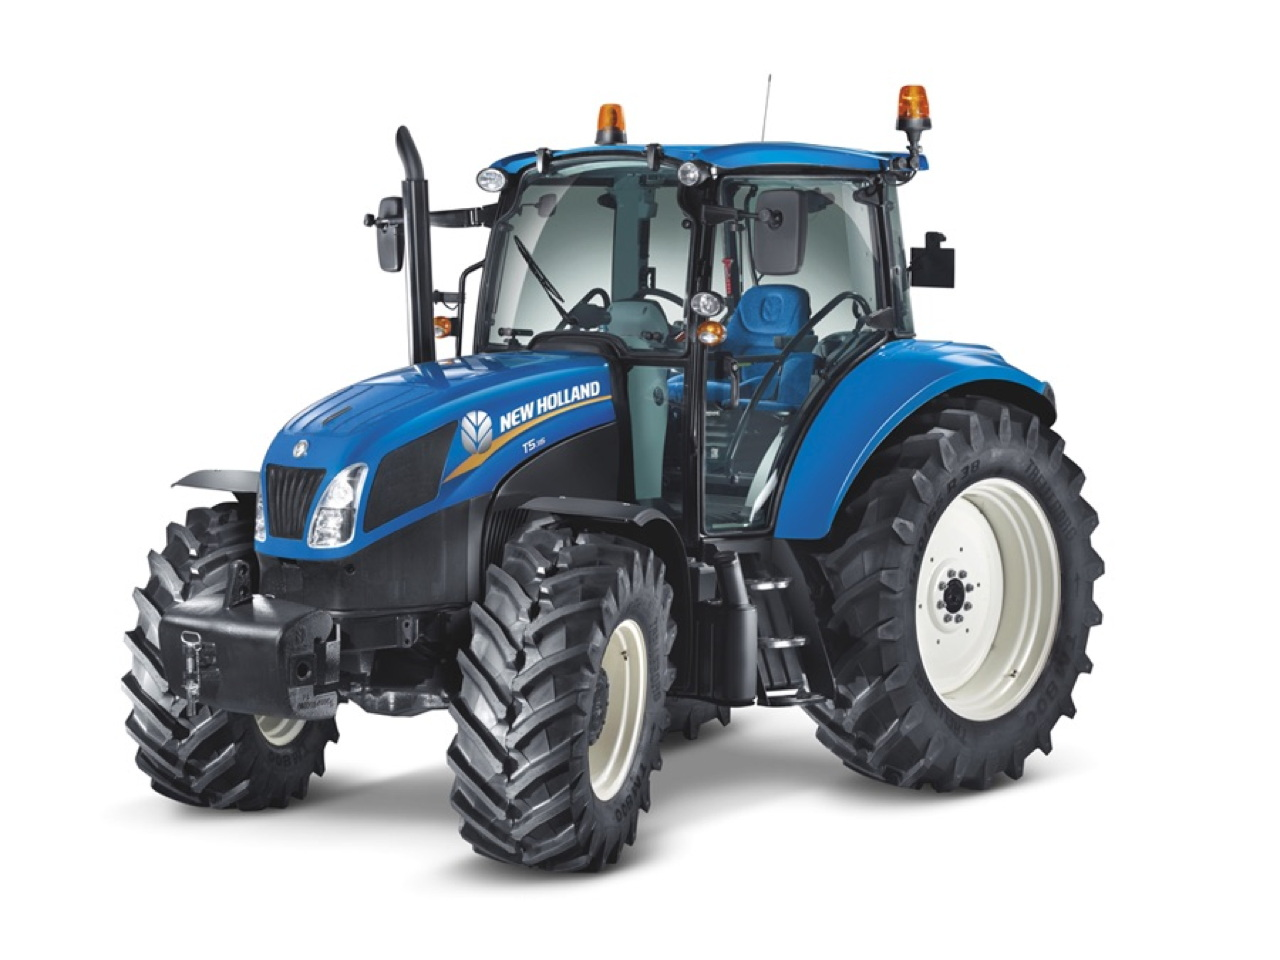 New Holland T5 Utility T5.115 Utility